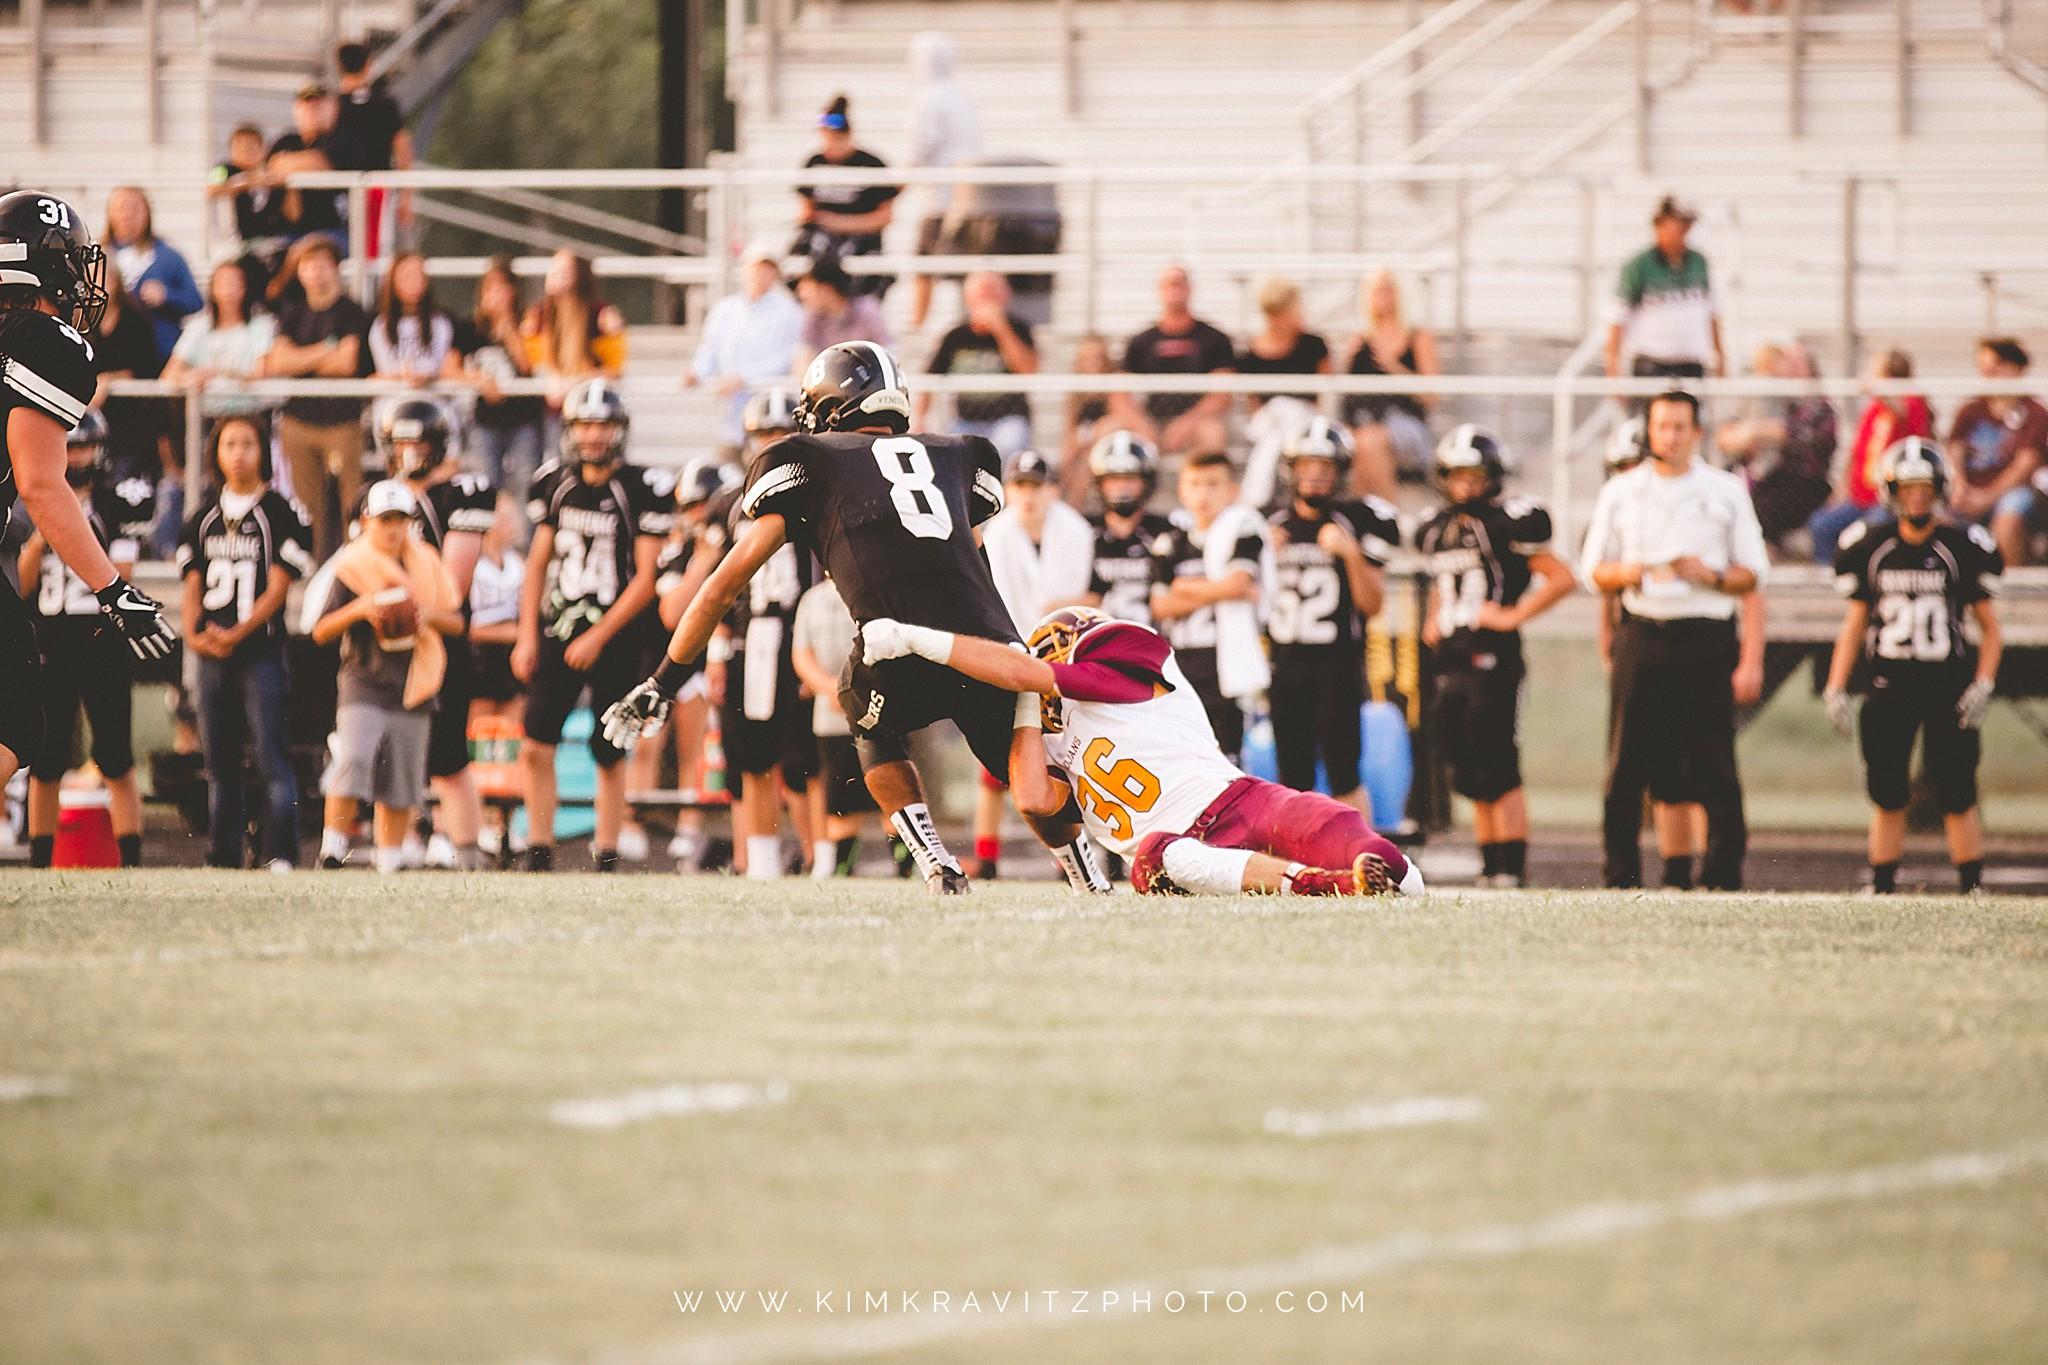 Girard Trojans vs Frontenac Raiders Kansas Football by Kim Kravitz